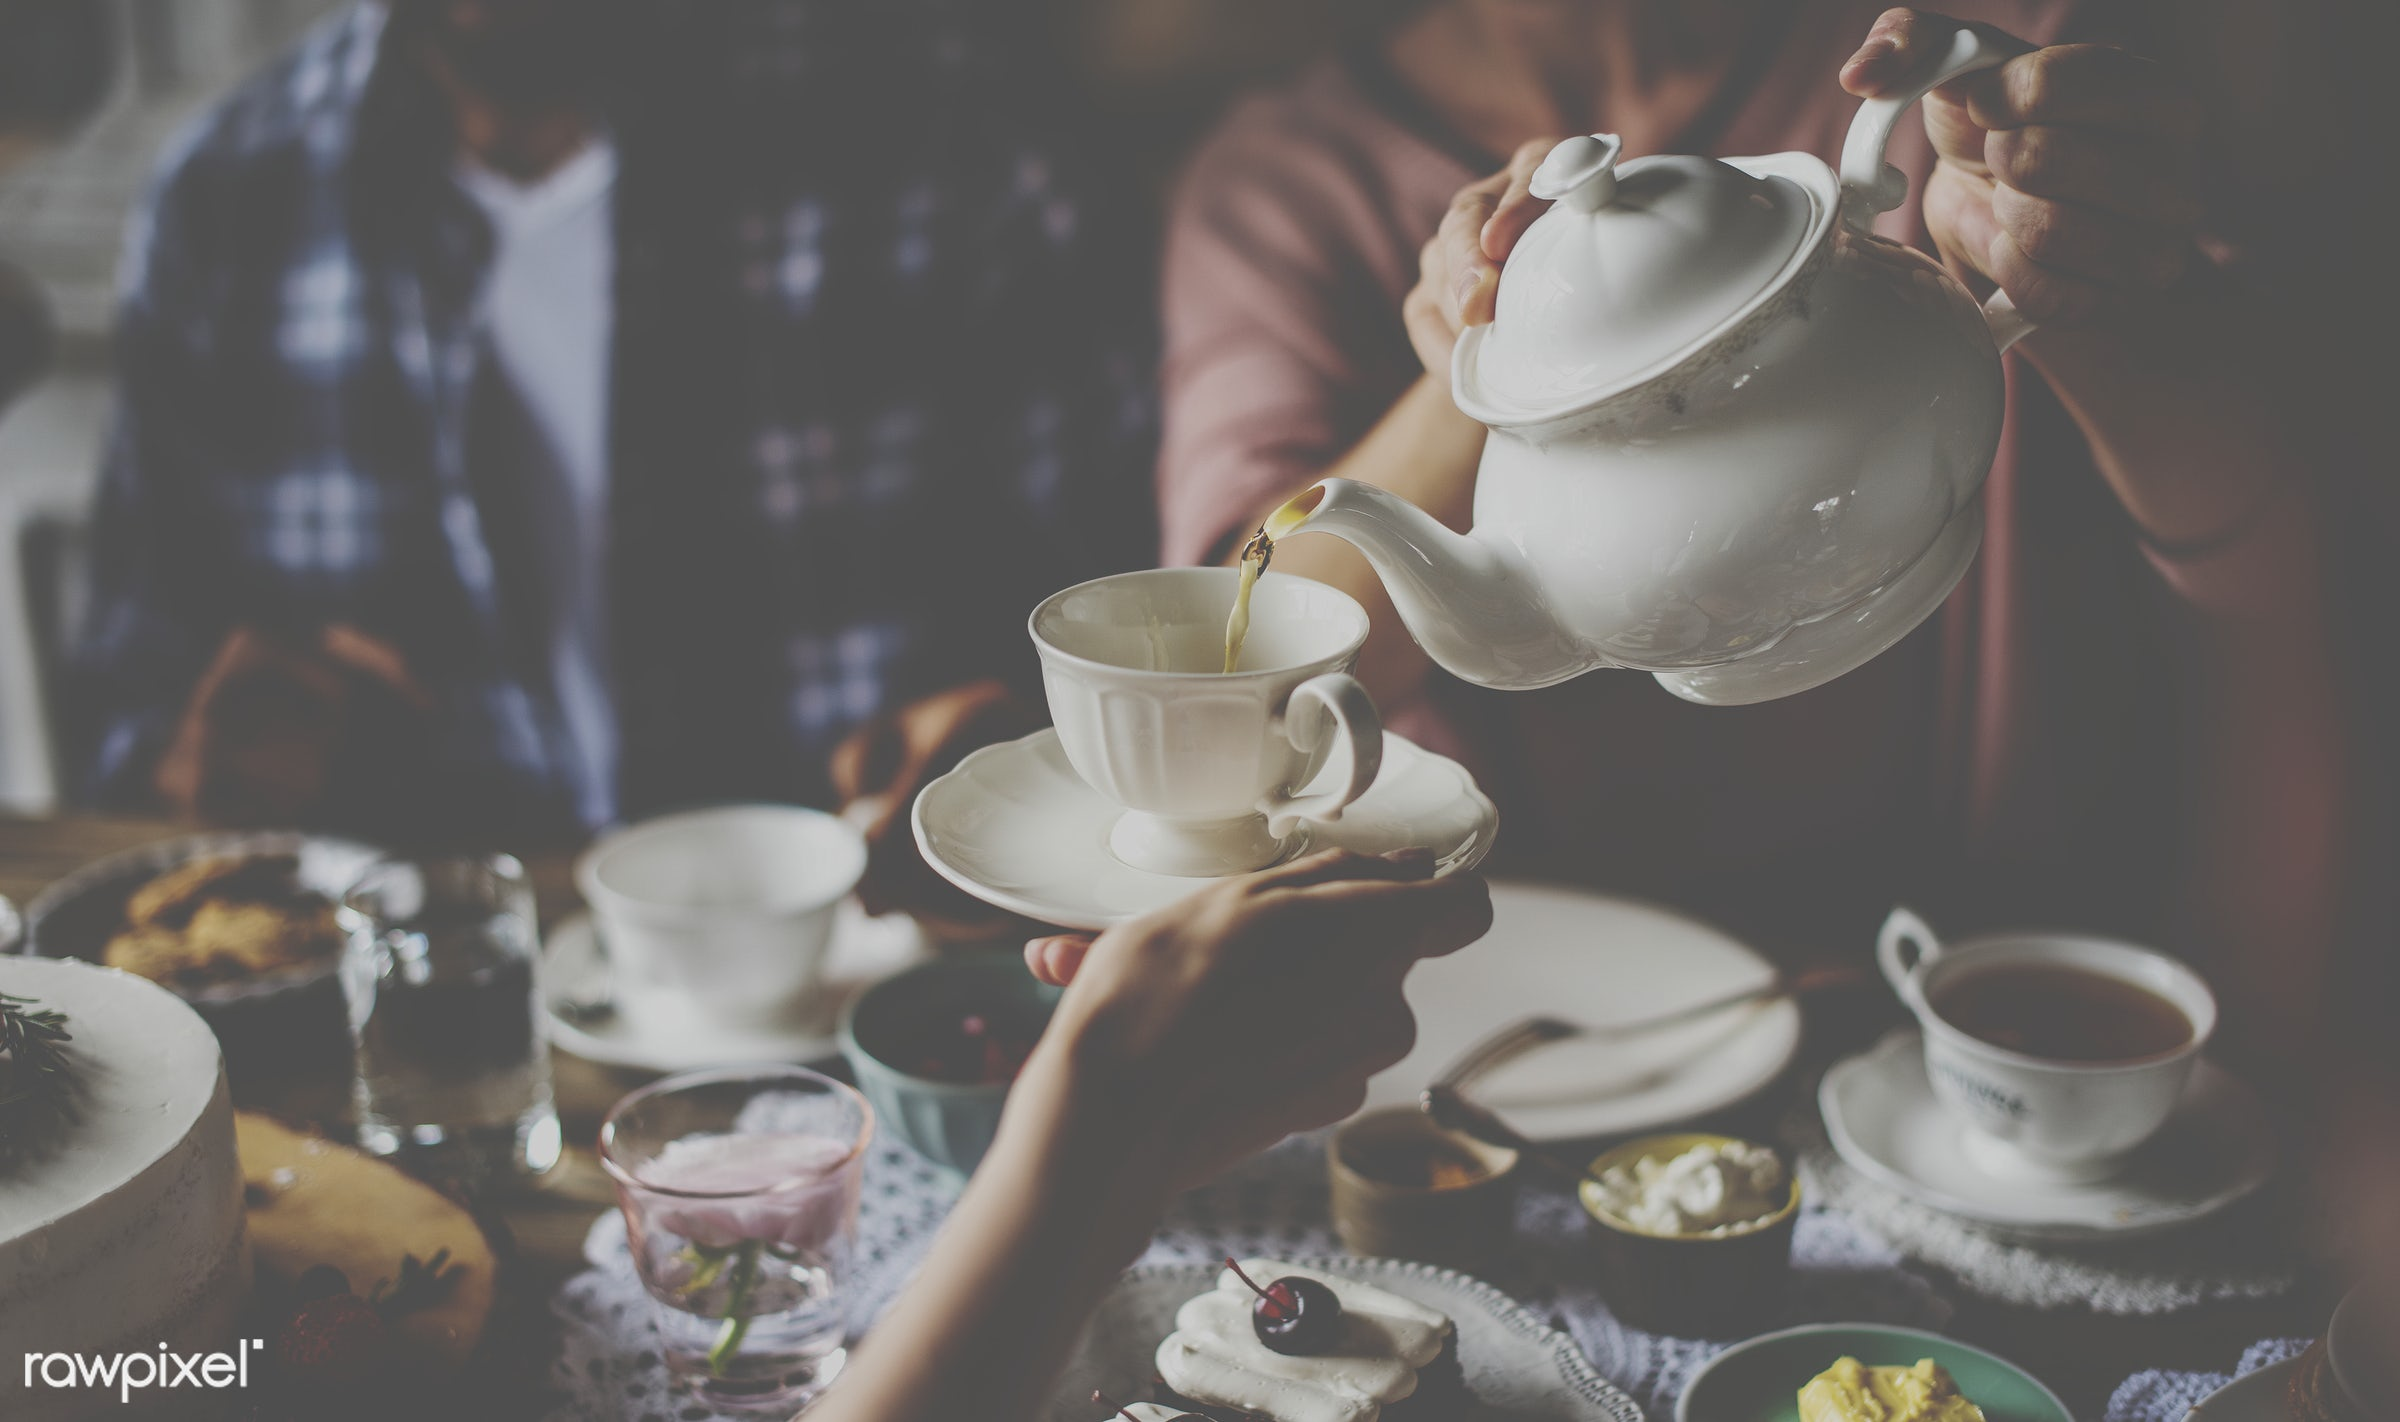 Pouring some tea in a cup - cake, dessert, drink, eat, event, gather, hands, happiness, man, men, occasion, party, people,...